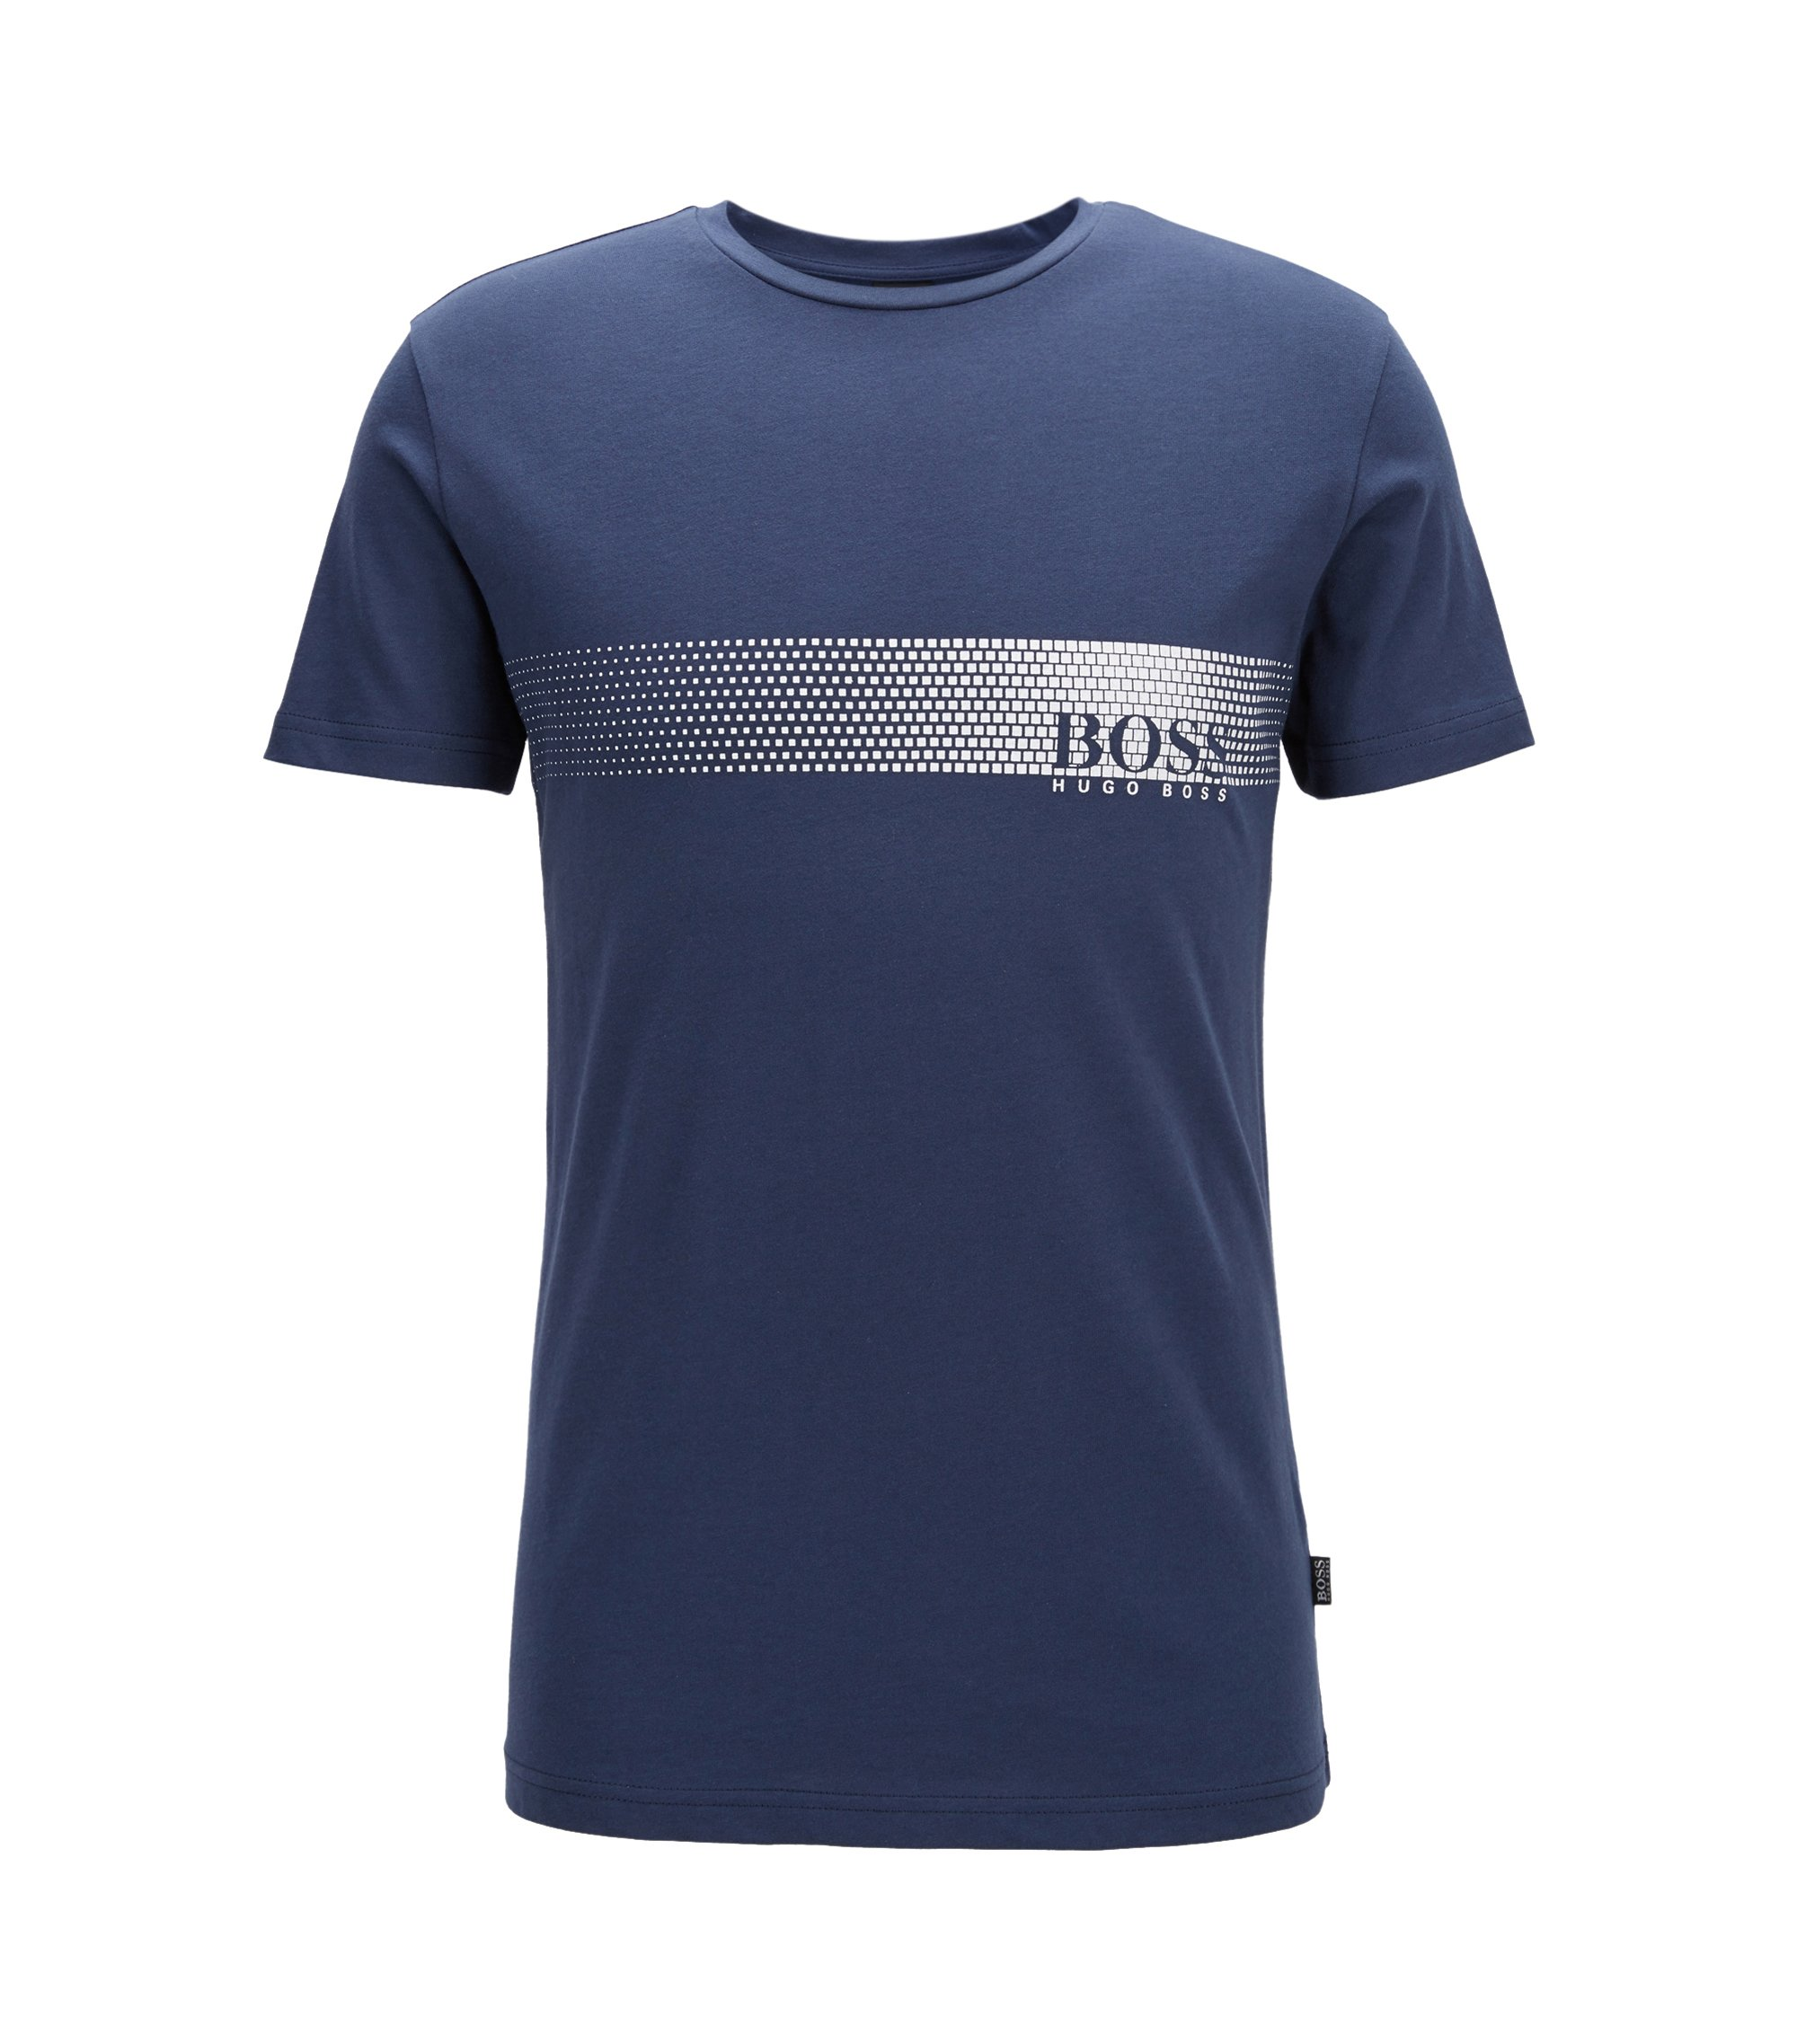 Sunsafe logo T-shirt in cotton, Dark Blue